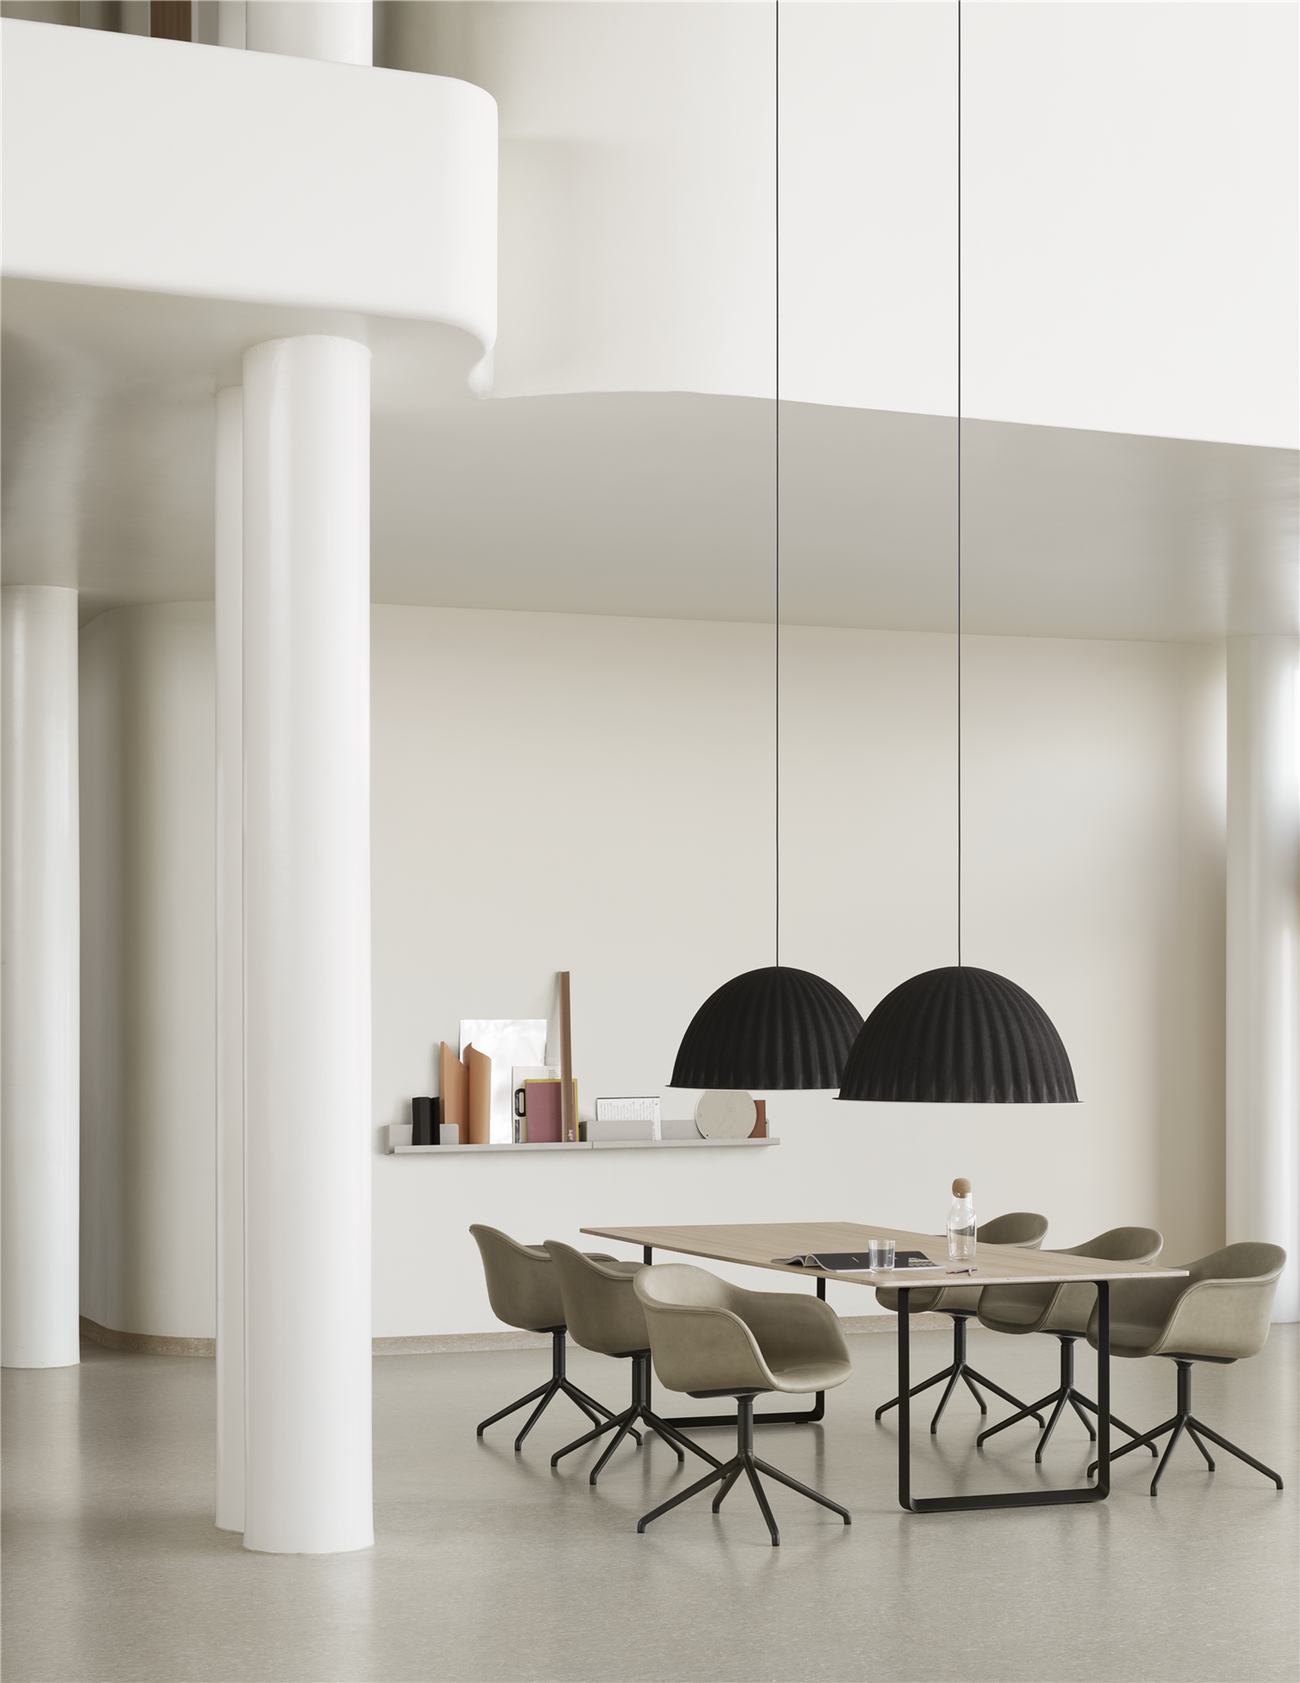 - Under The Bell is a pendant lamp that is multi-functional as the design not only provides an ambient light but also enhances the acoustics of the room. Under The Bell is a prime example of modern design with hints to Scandinavian values.